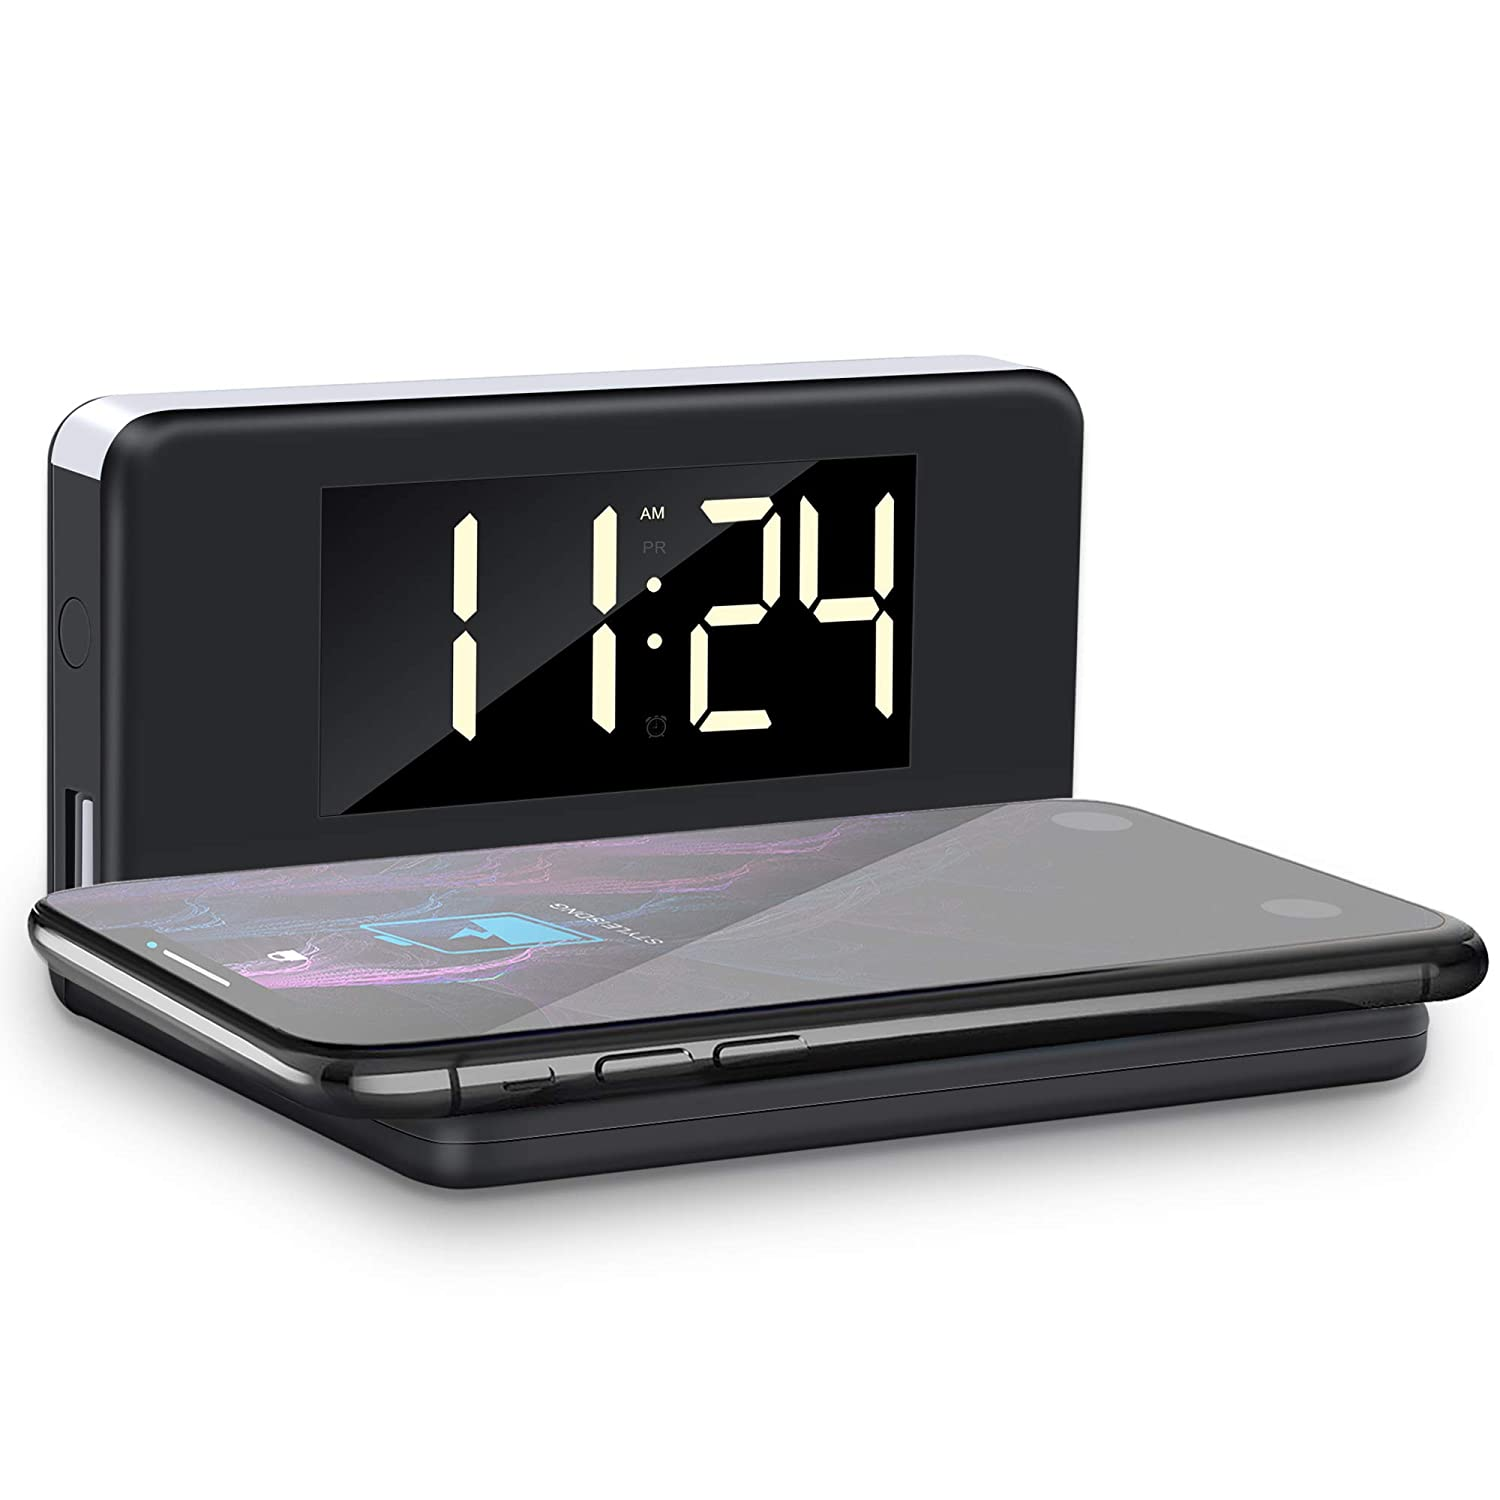 Digital Alarm Clock with Wireless Charger, YPLANG Digital Alarm Clock with Adjustable Brightness, Ringtones, Bedside Alarm Clocks with Snooze for ...